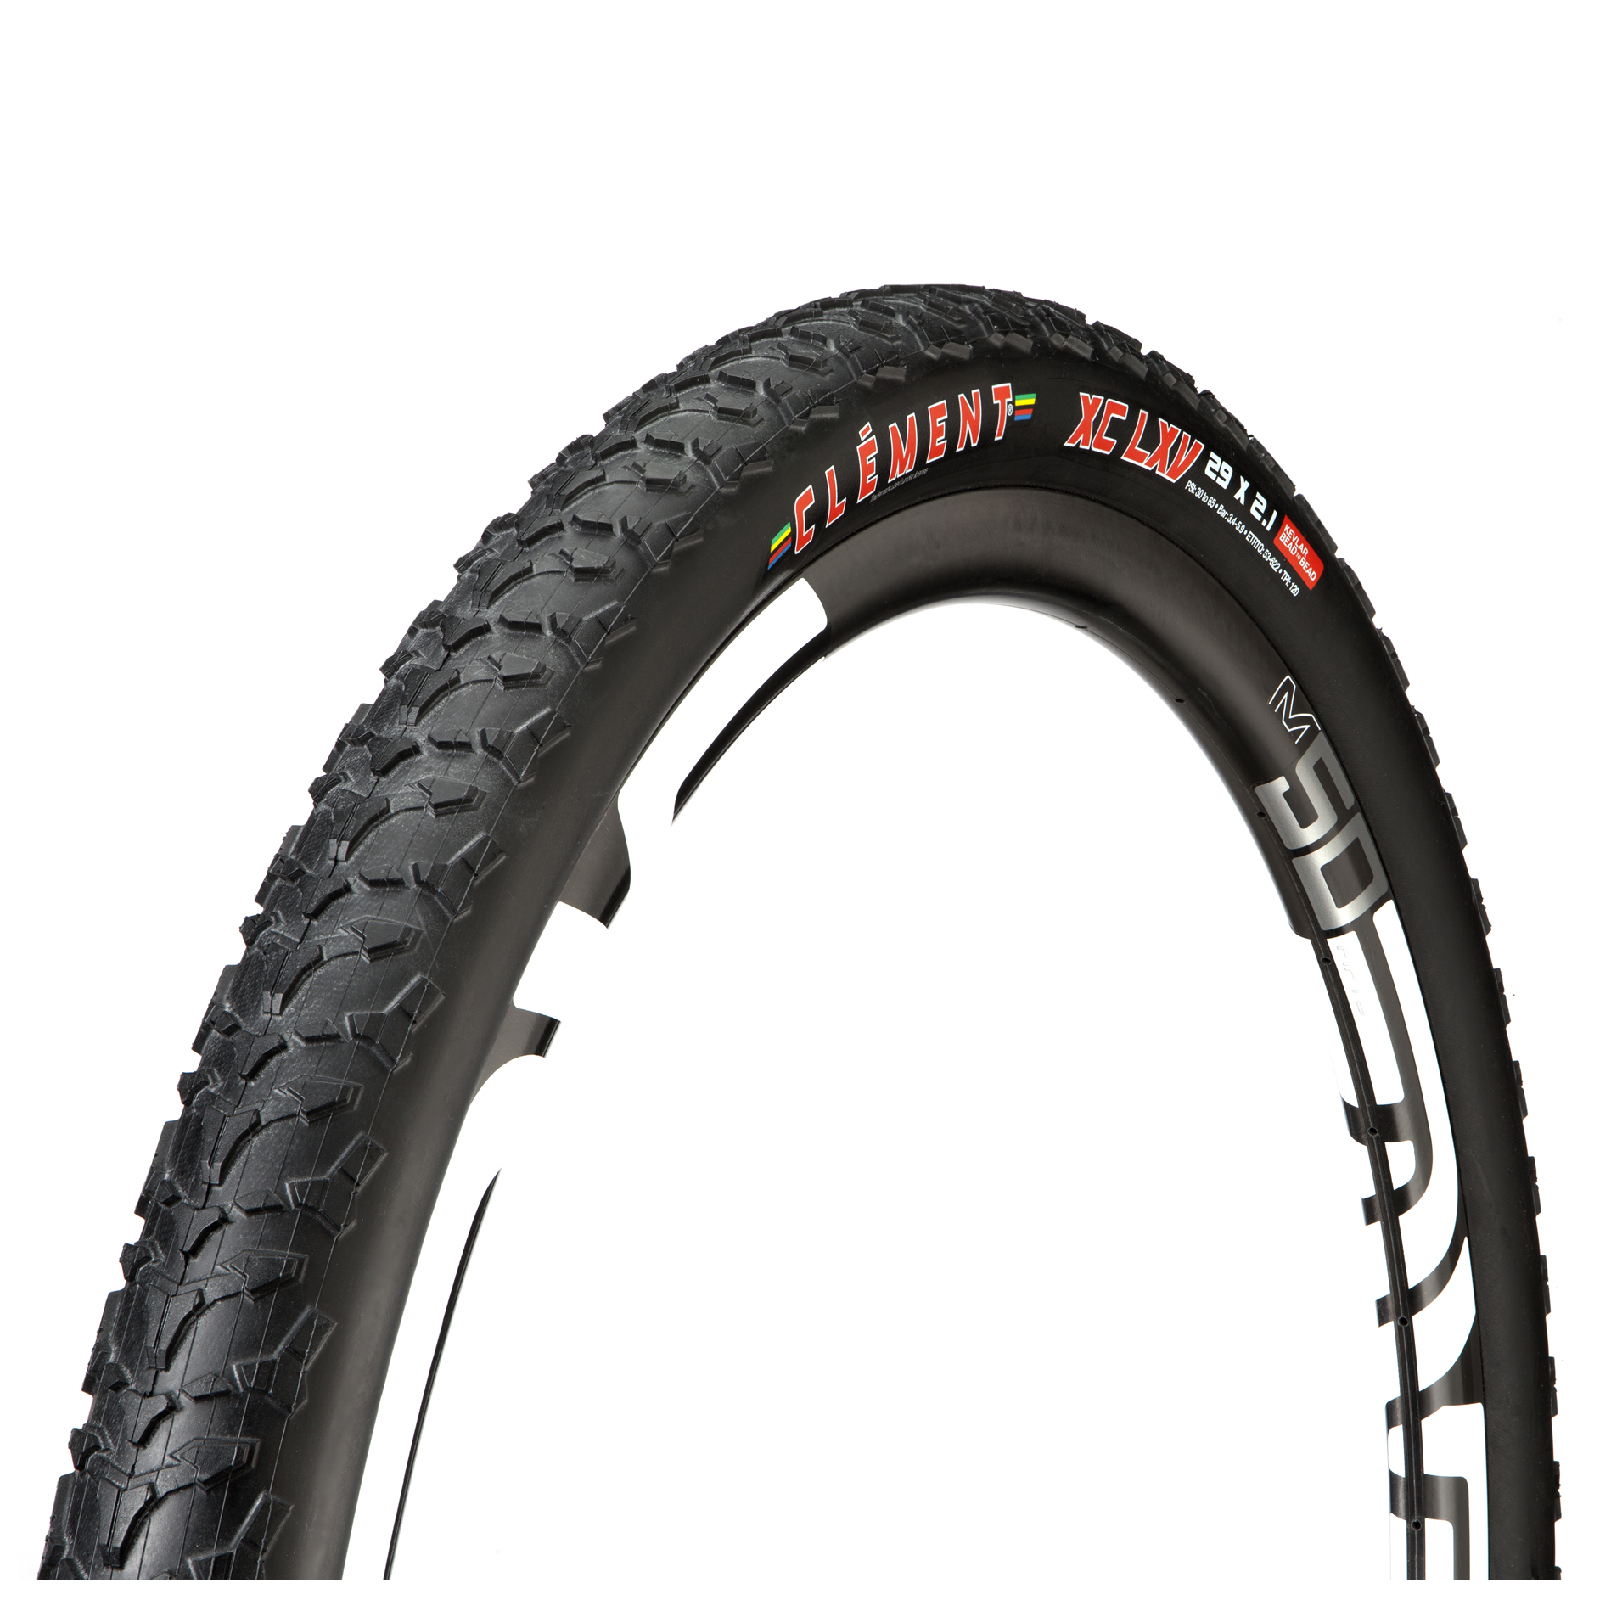 Clement LXV 120TPI MTB Tyre - 29in x 2.10in